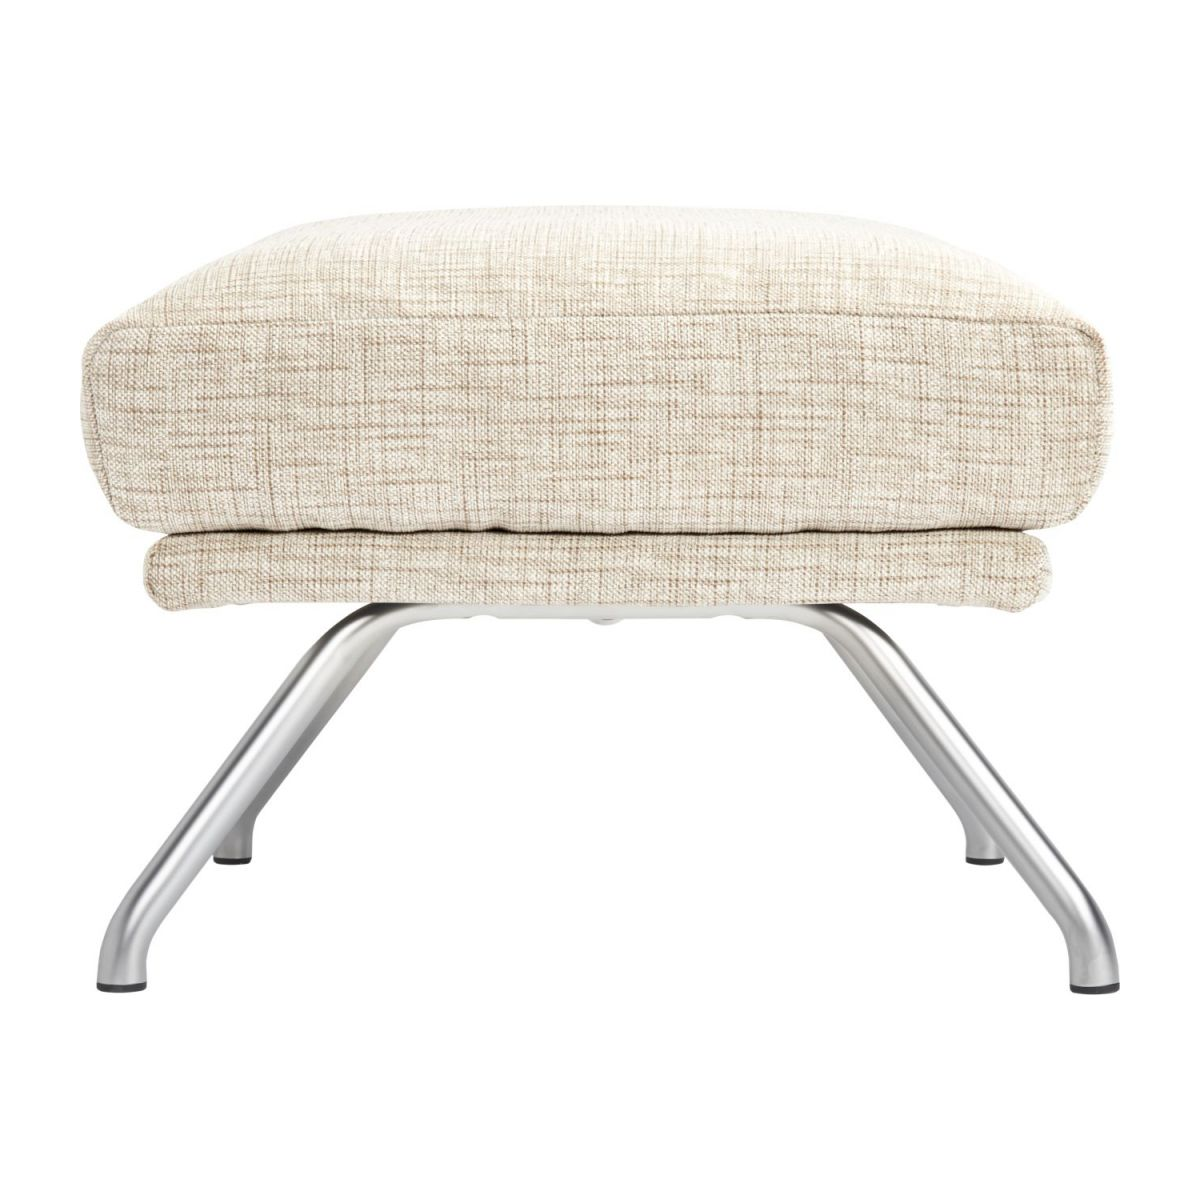 Footstool in Ancio fabric, nature with matt metal legs n°4